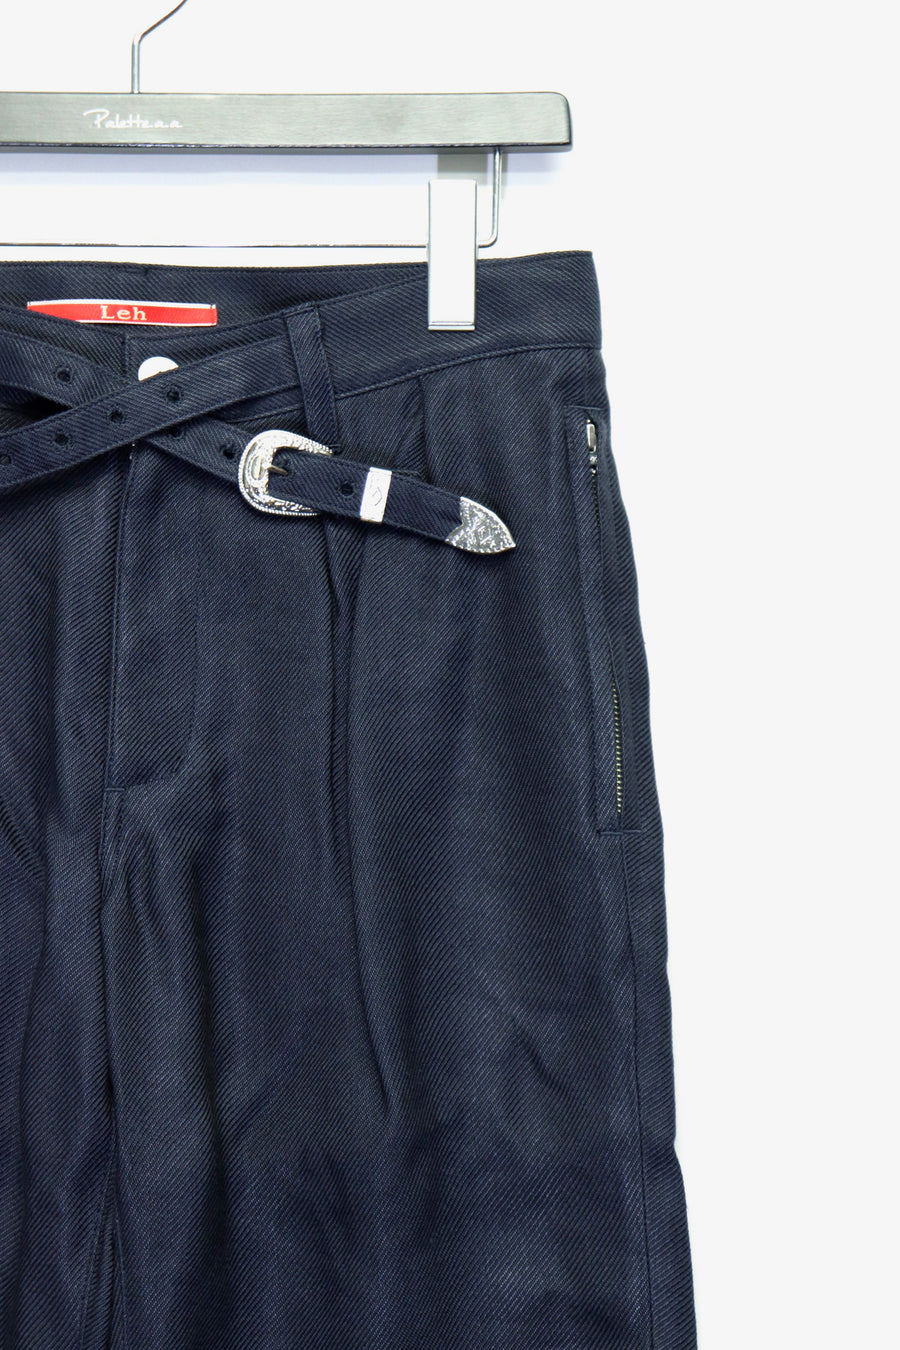 LEH  Band Slim Pants(NAVY)